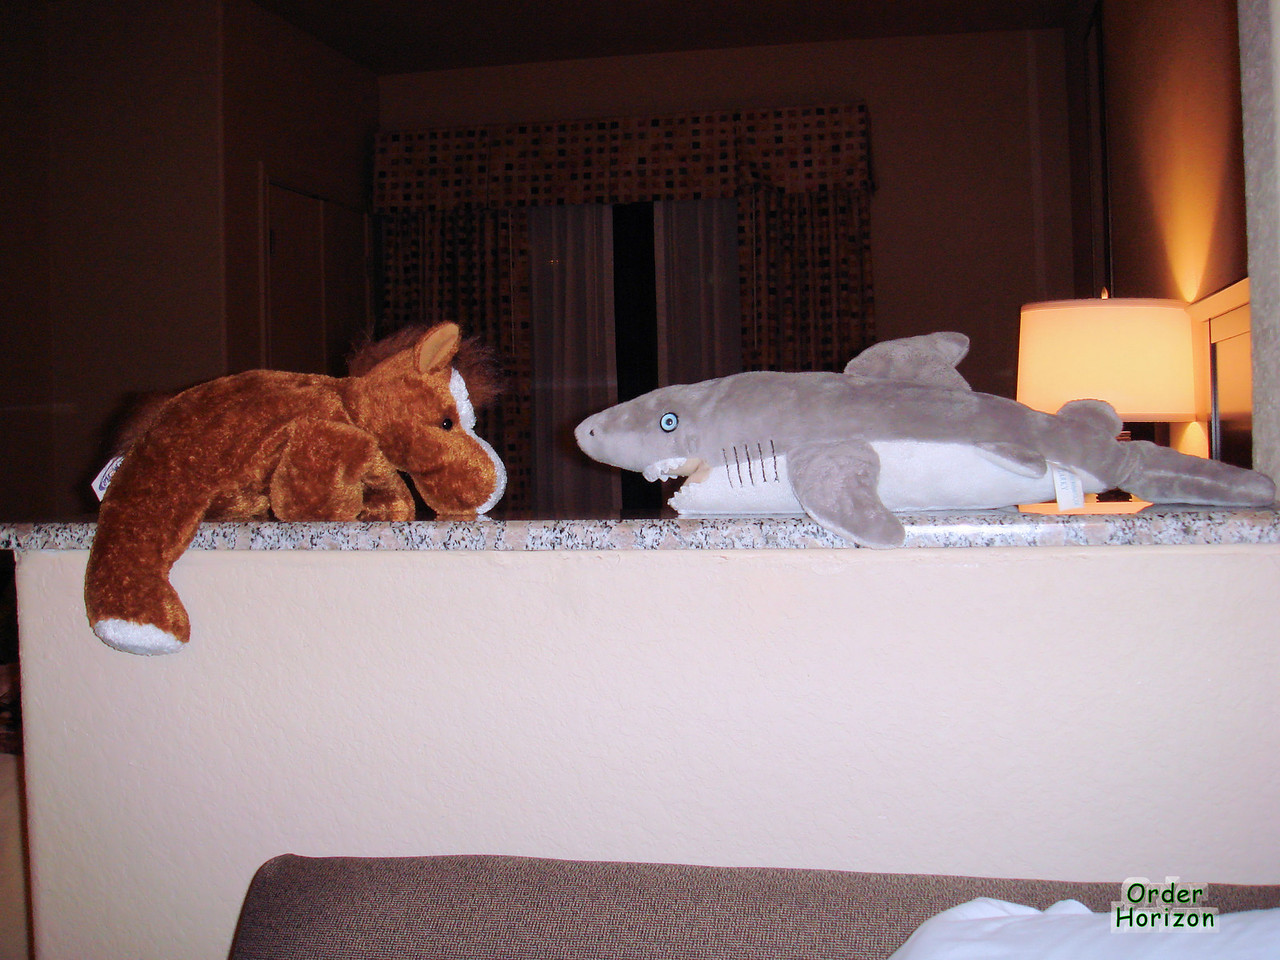 Charles and Alice insisted on having the stuffed animals sleep on the ledge in the hotel room